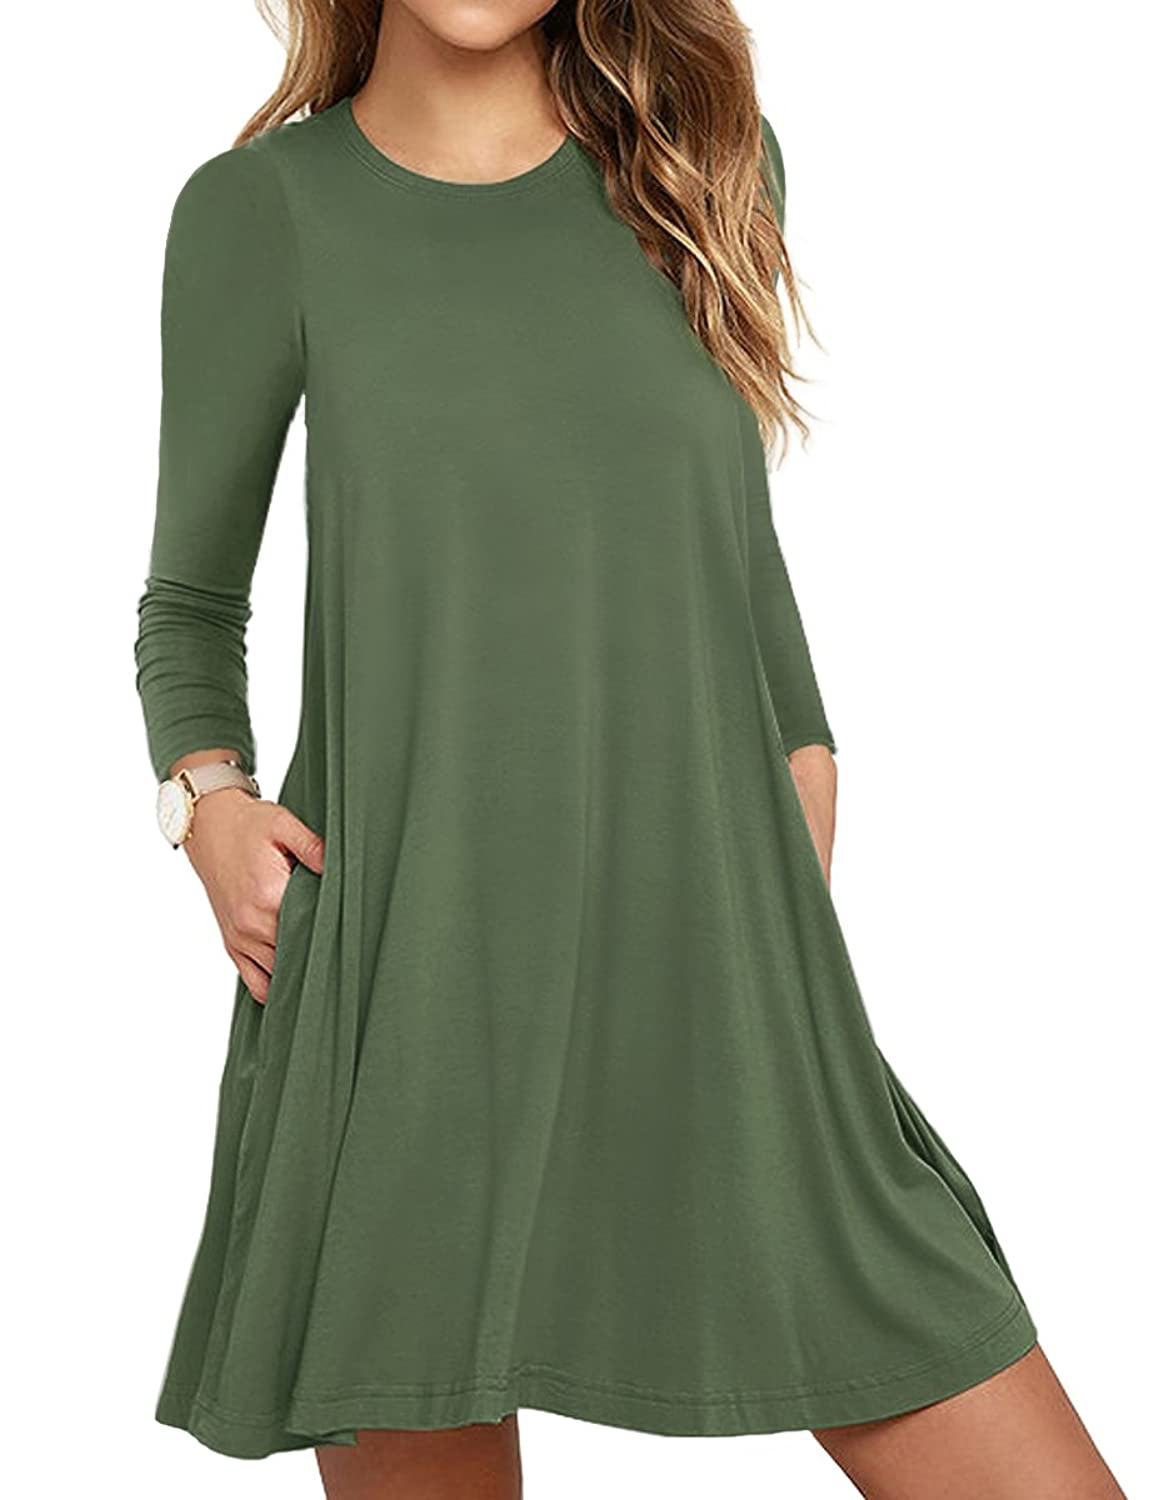 1caad038ba19 Features:casual basic style,A-line silhouette,sleeveless,round neck,super  soft. Size:Small/US4-6 ,Medium/US 8-10,Large/US 12-14,X-Large/US  16-18,2X-Large/US ...